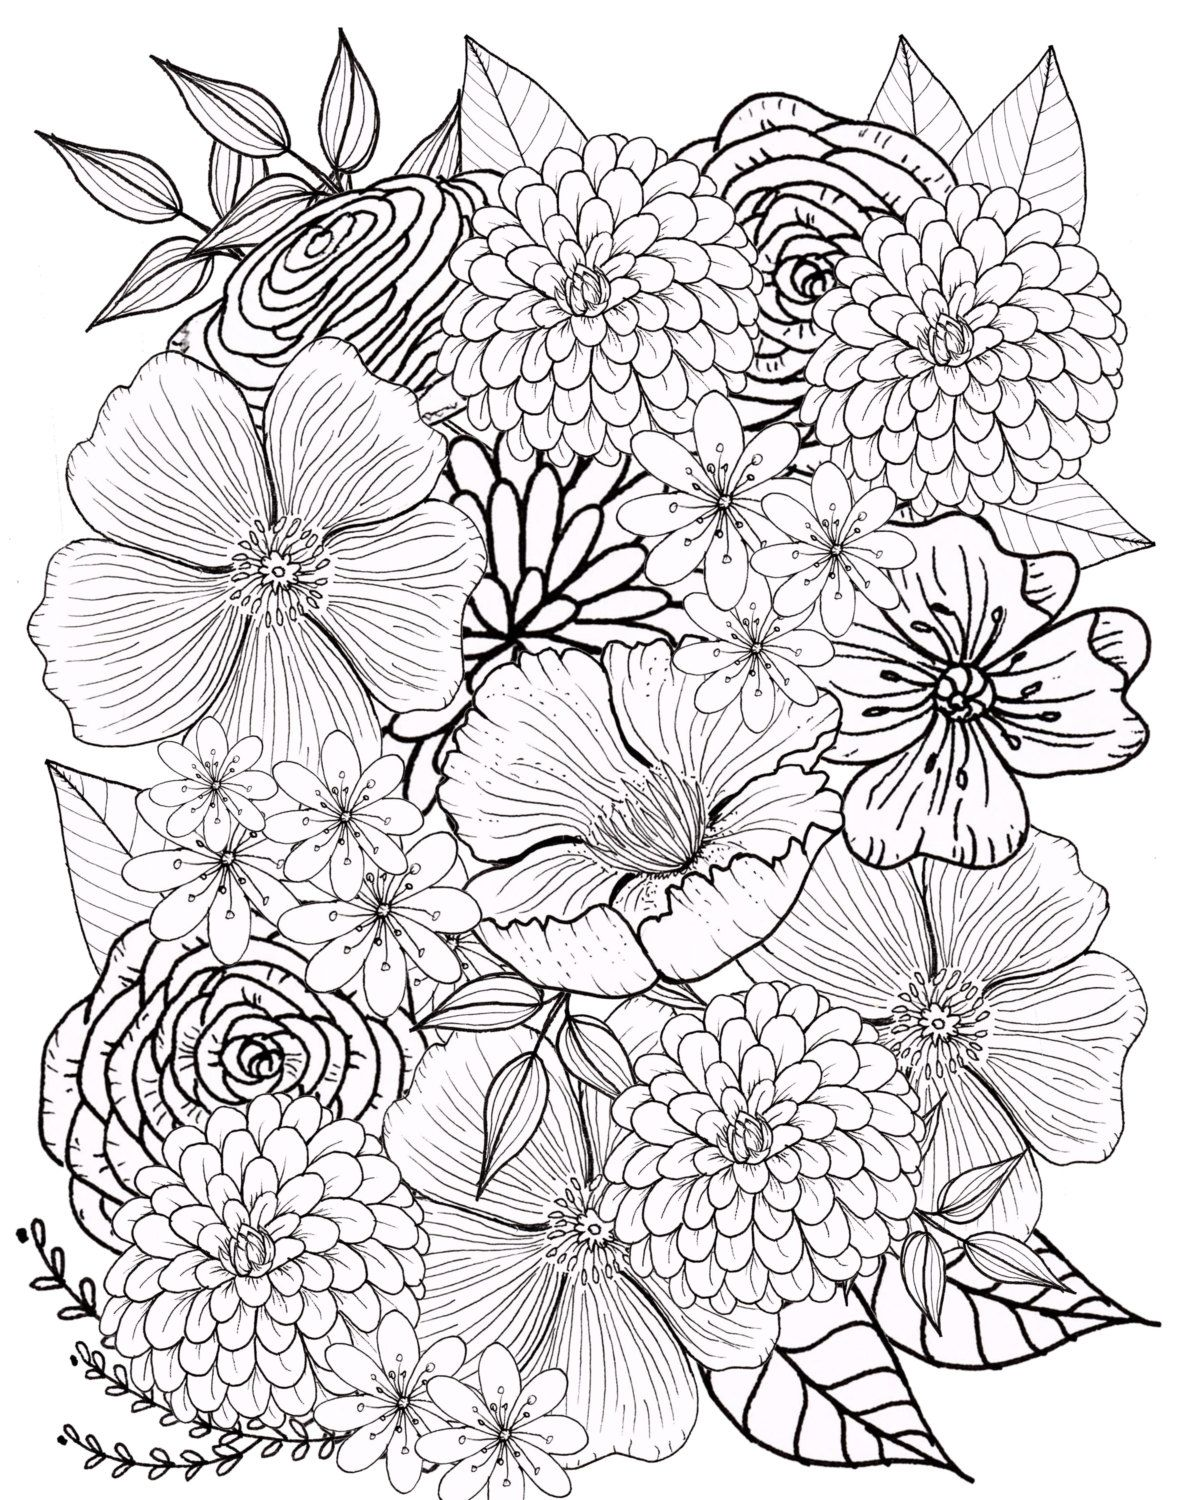 Flower Coloring Page Floral Coloring Page Adult Coloring Page